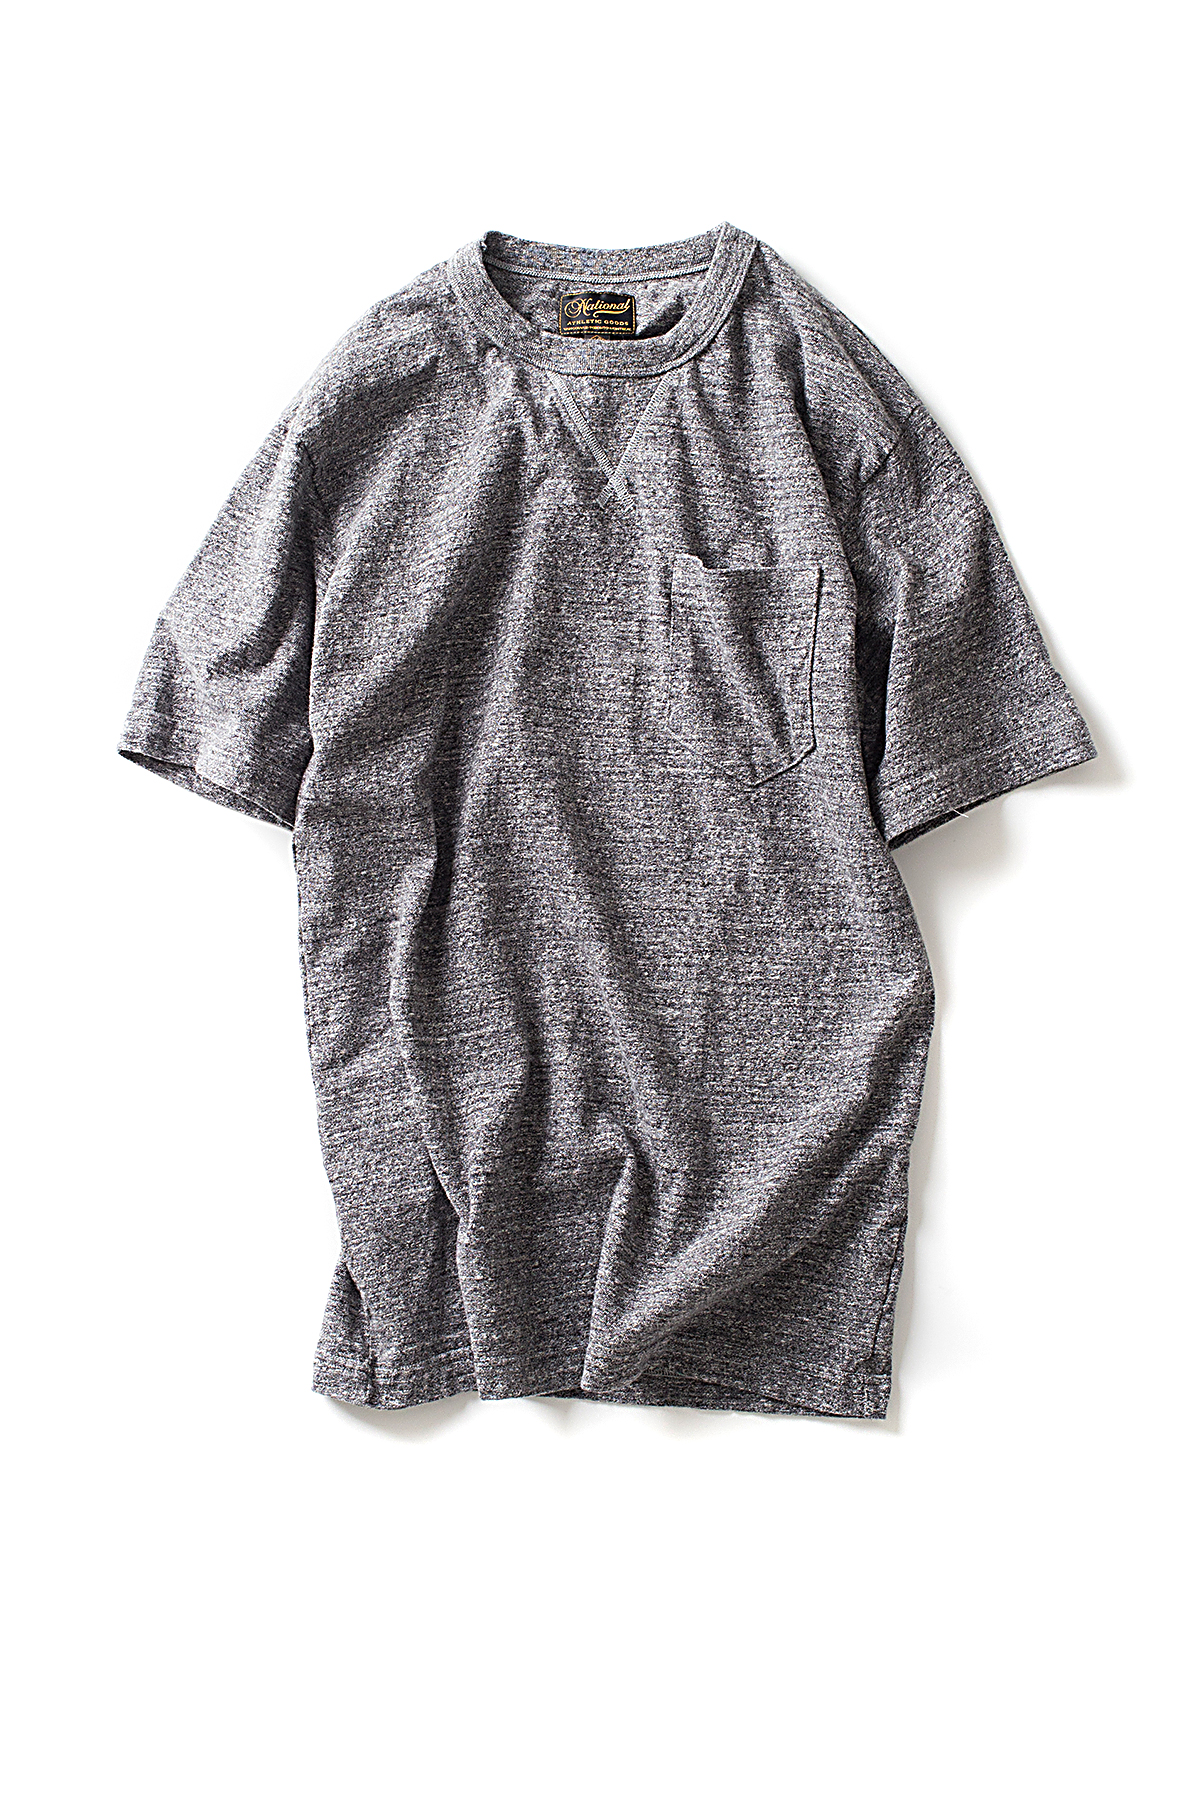 NAG : V Pocket Tee (Dark Grey)